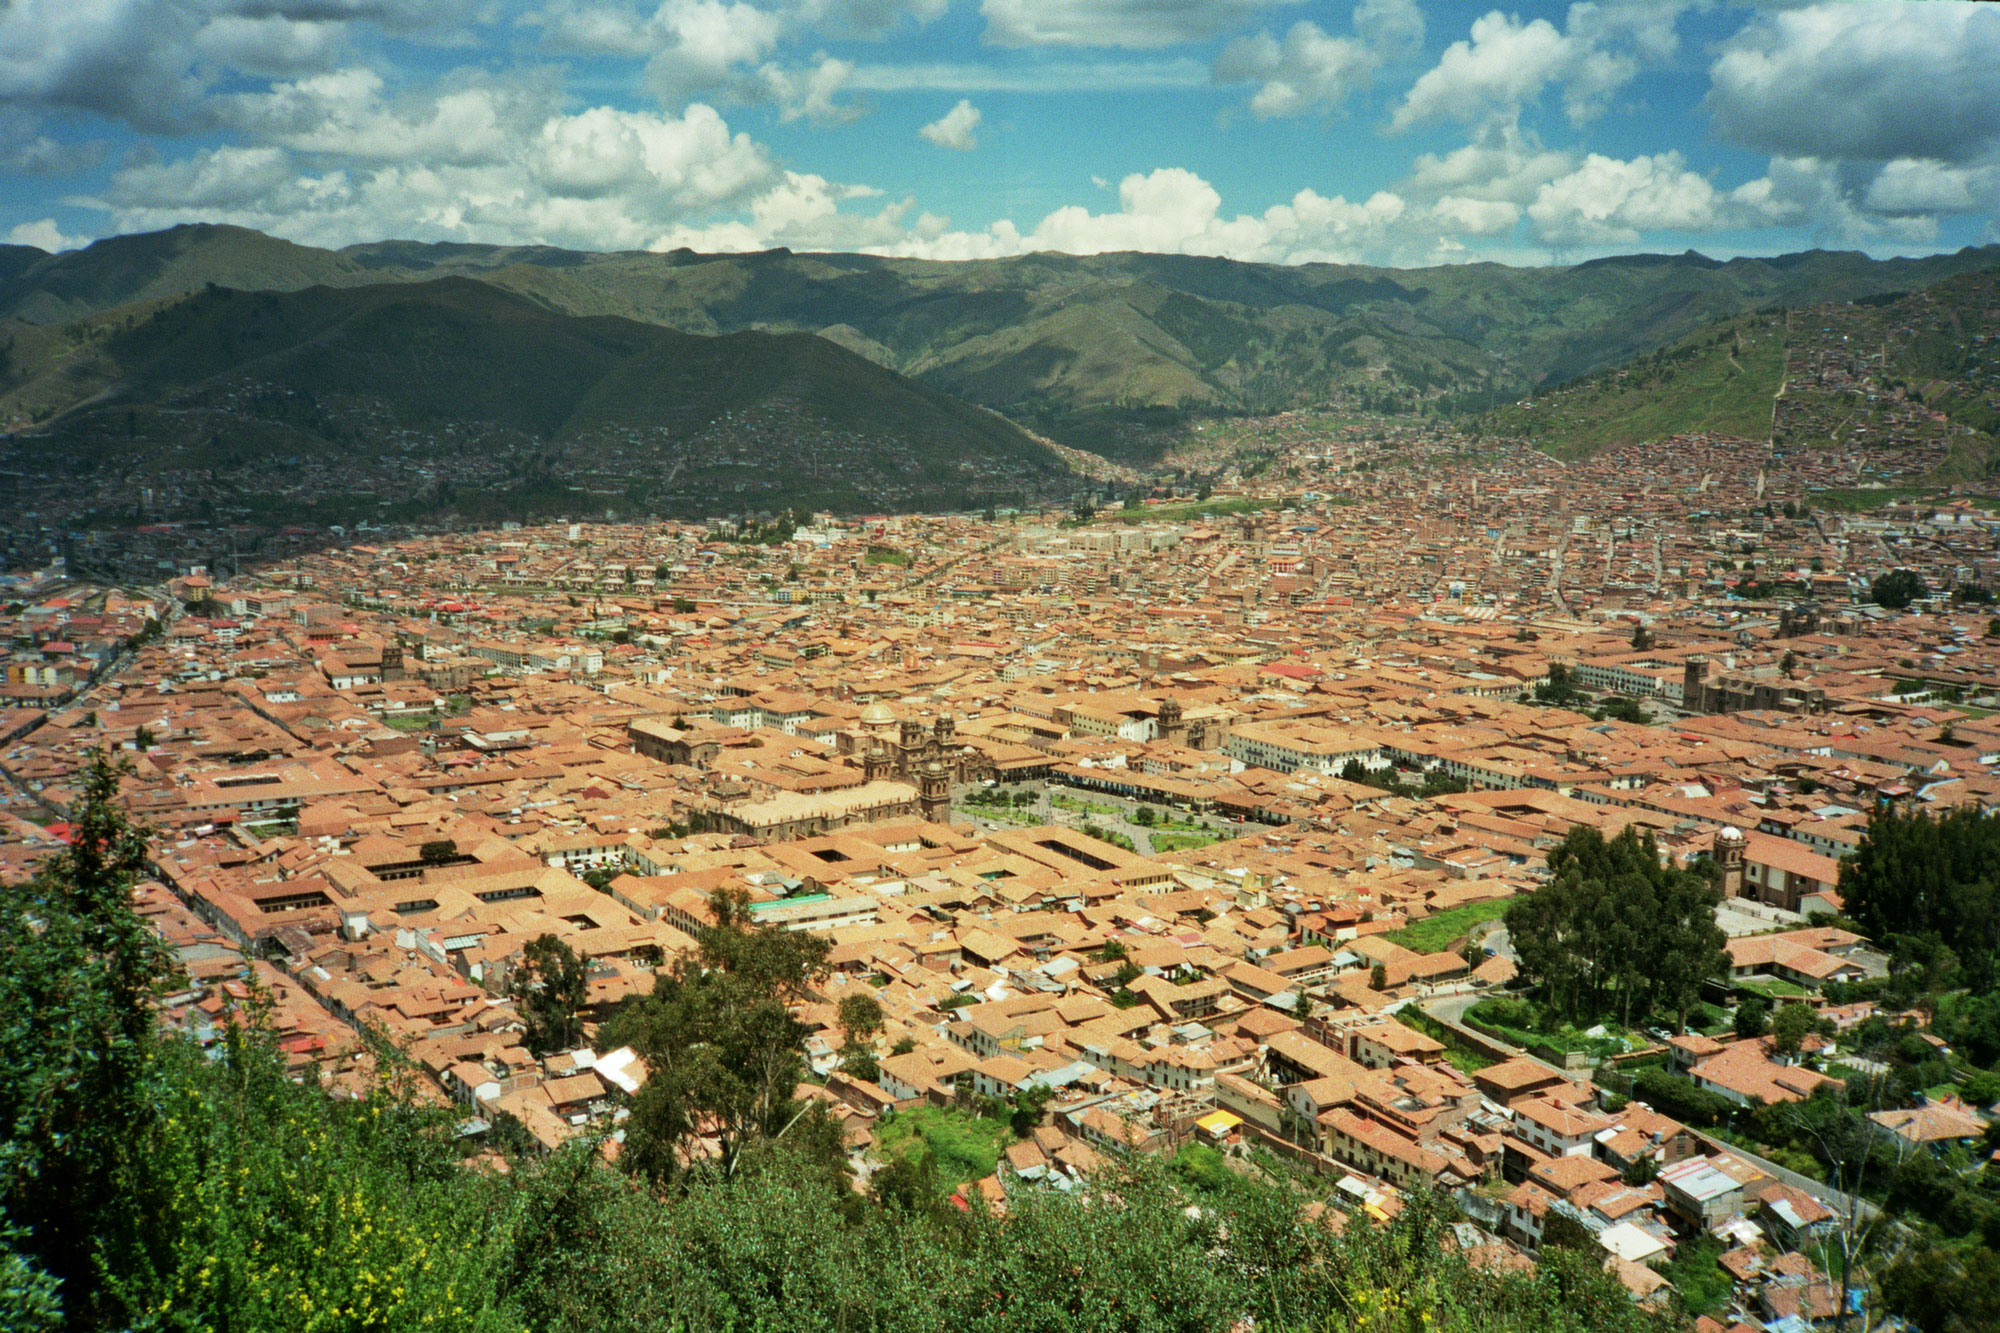 Peru Cusco Saksaywaman top city view